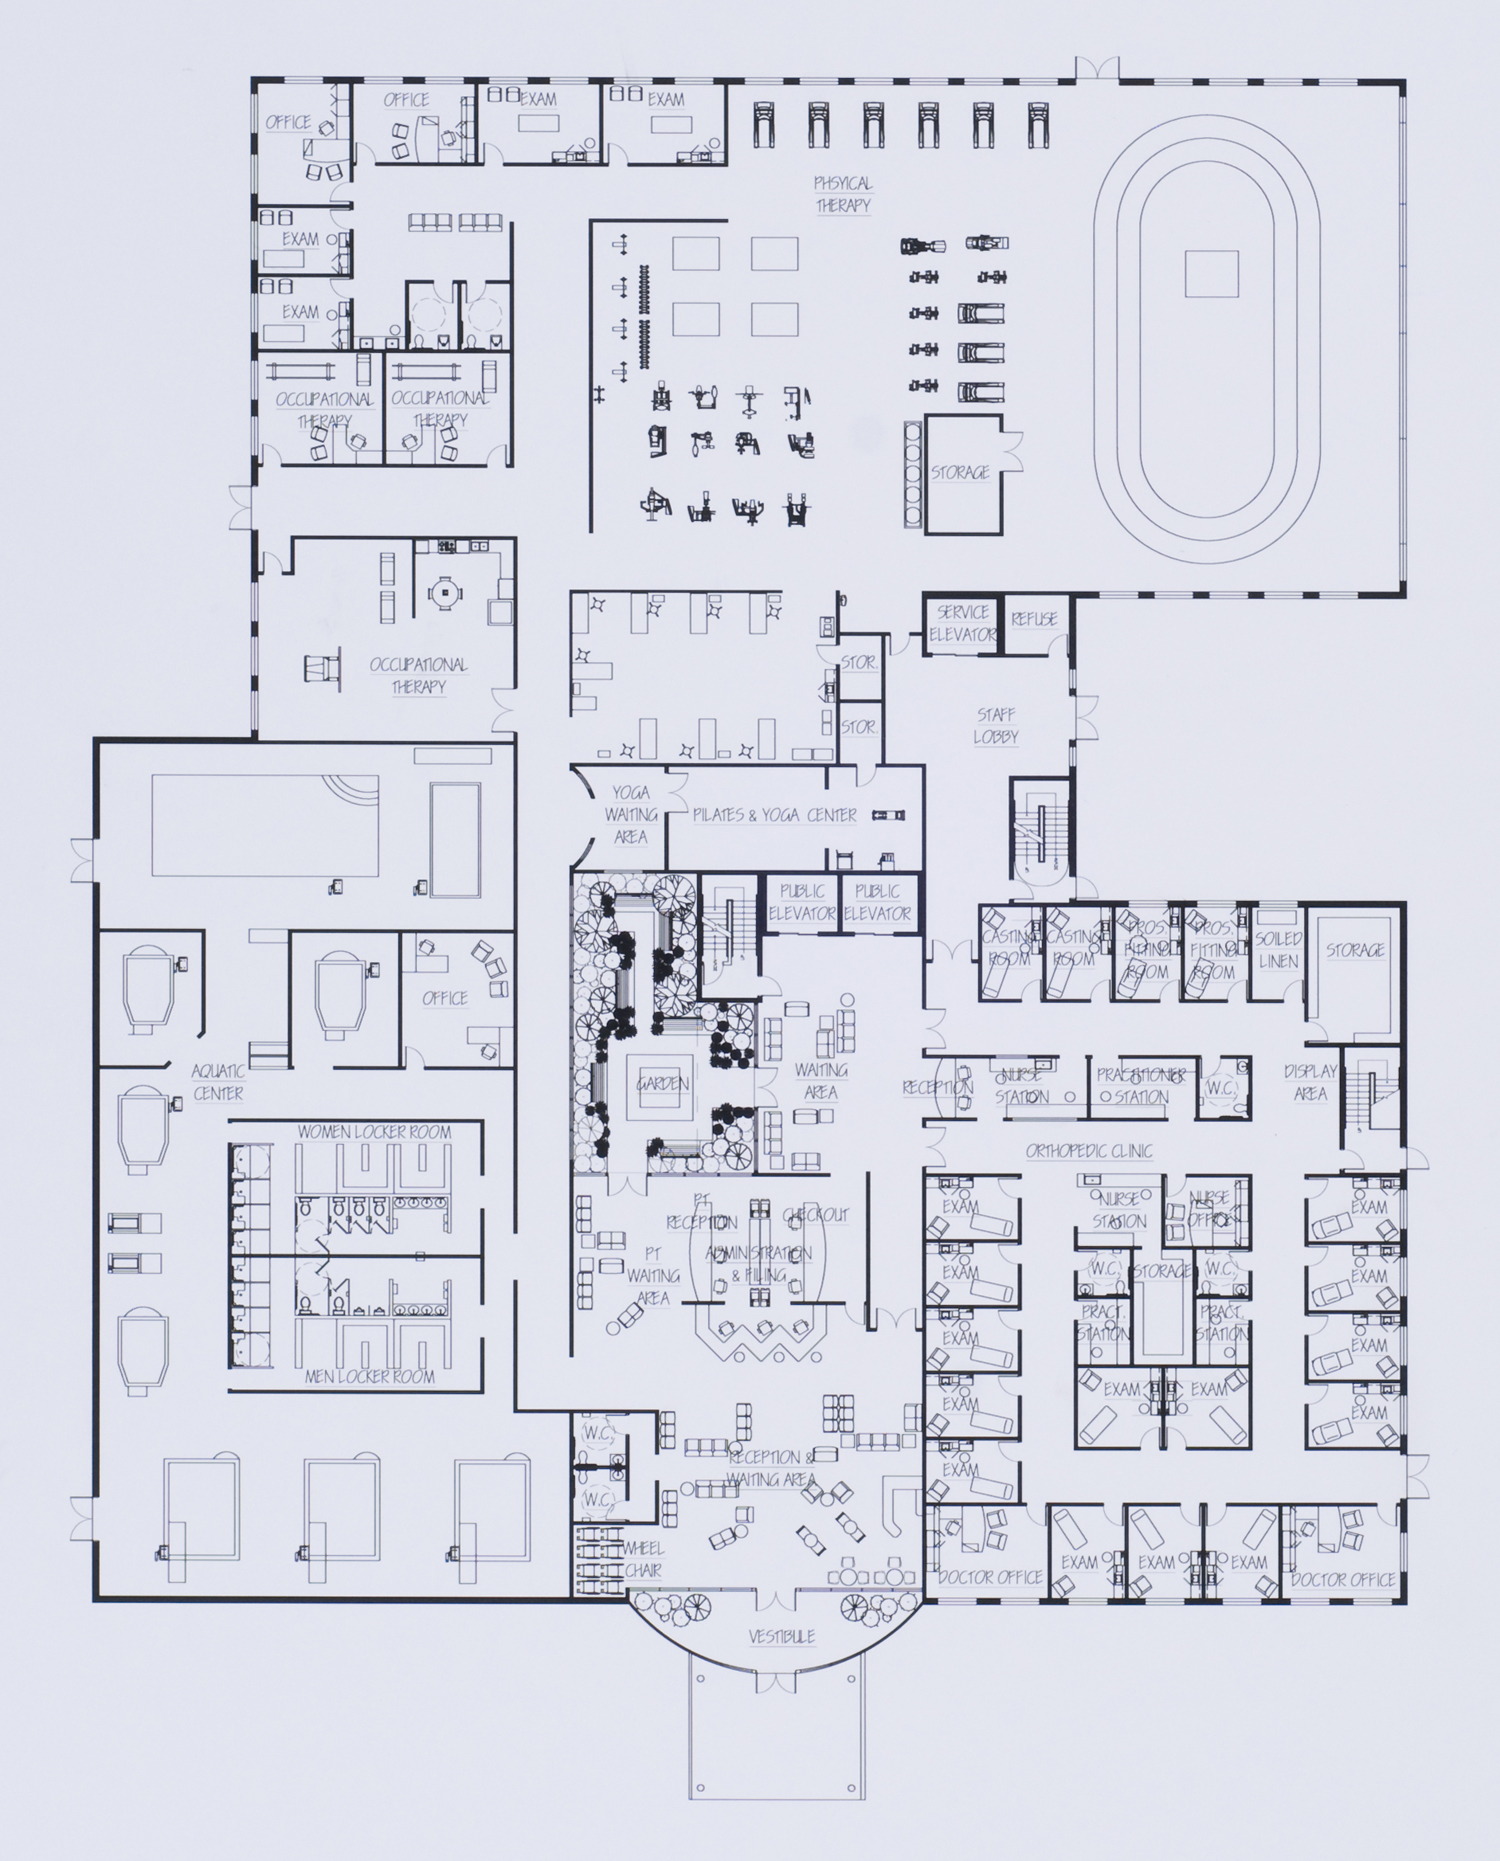 Imaging Center Medical Office Floor Plans as well X Ray Room Floor Plan Simple furthermore Free Optometry Office Floor Plans likewise Healthcare Design likewise Physical Therapy Gym Floor Plan. on therapy clinic design floor plan